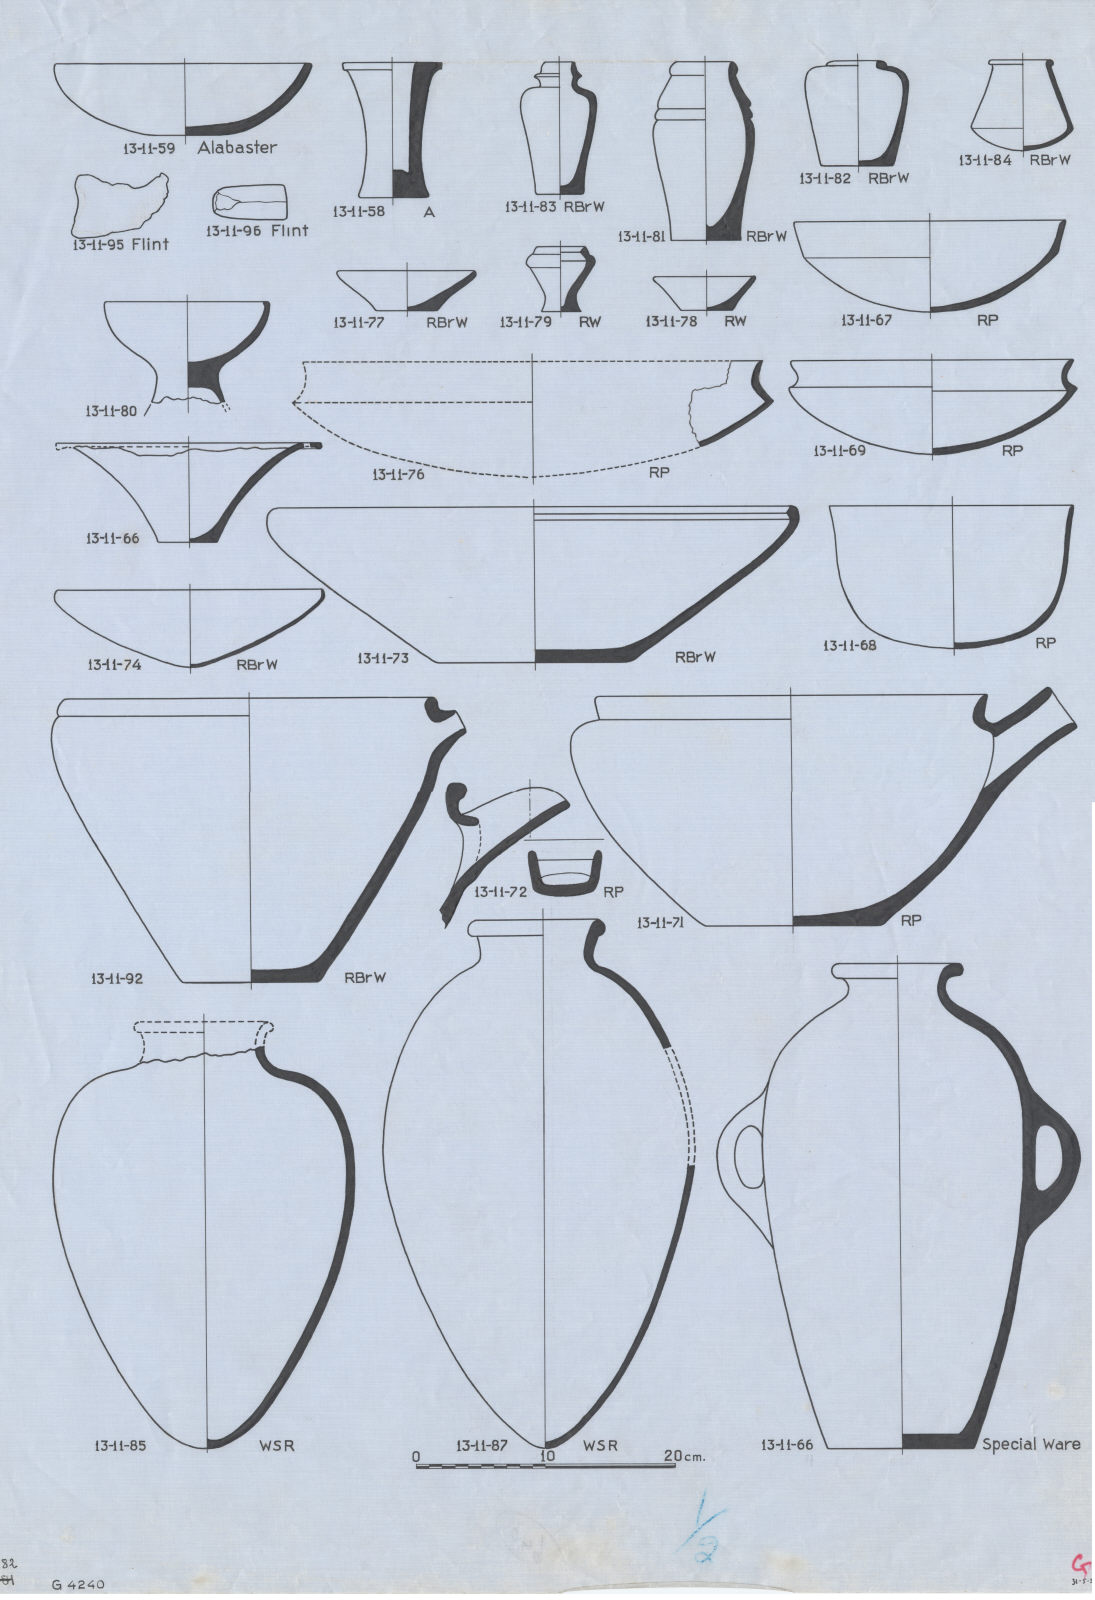 Drawings: G 4240: objects